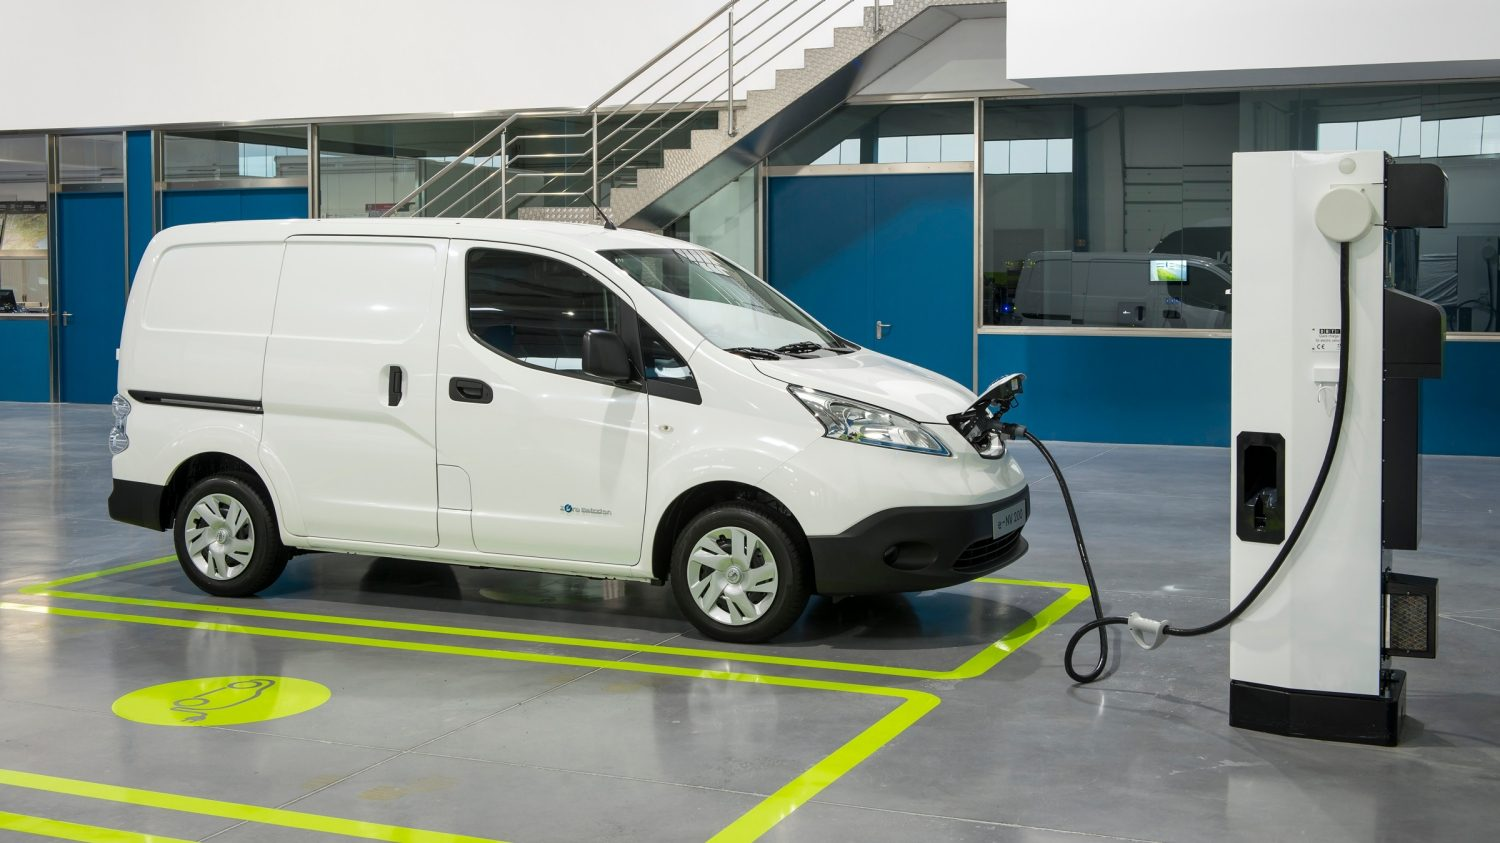 Nissan e-NV200 - In garage charging